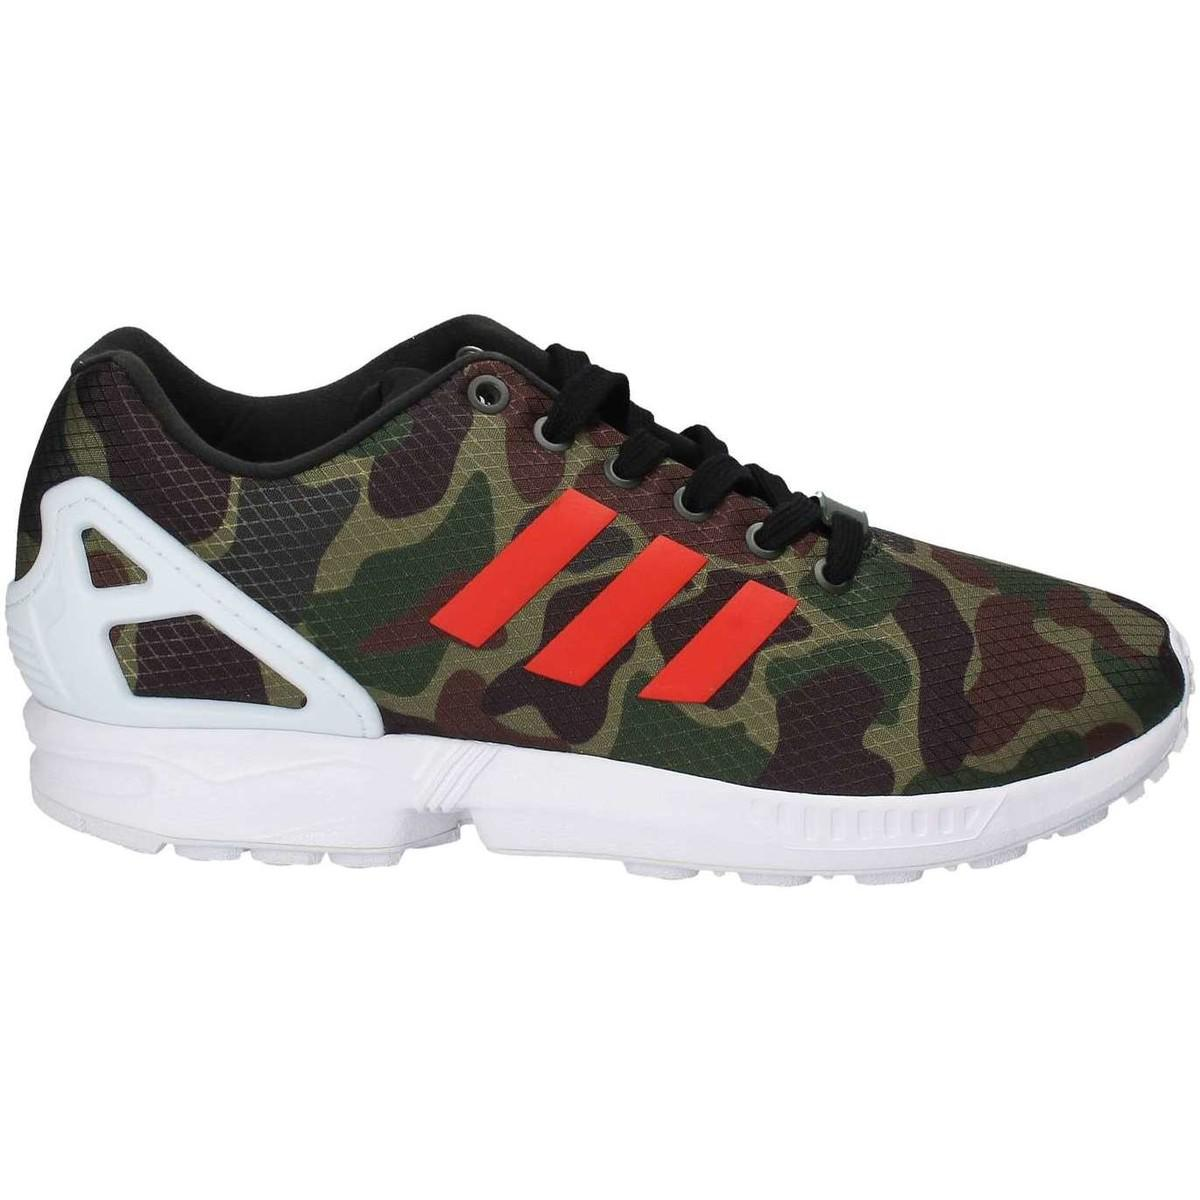 reputable site 92782 7e220 adidas Originals Bb2176 Sneakers Man Verde Men s Shoes (trainers) In ...